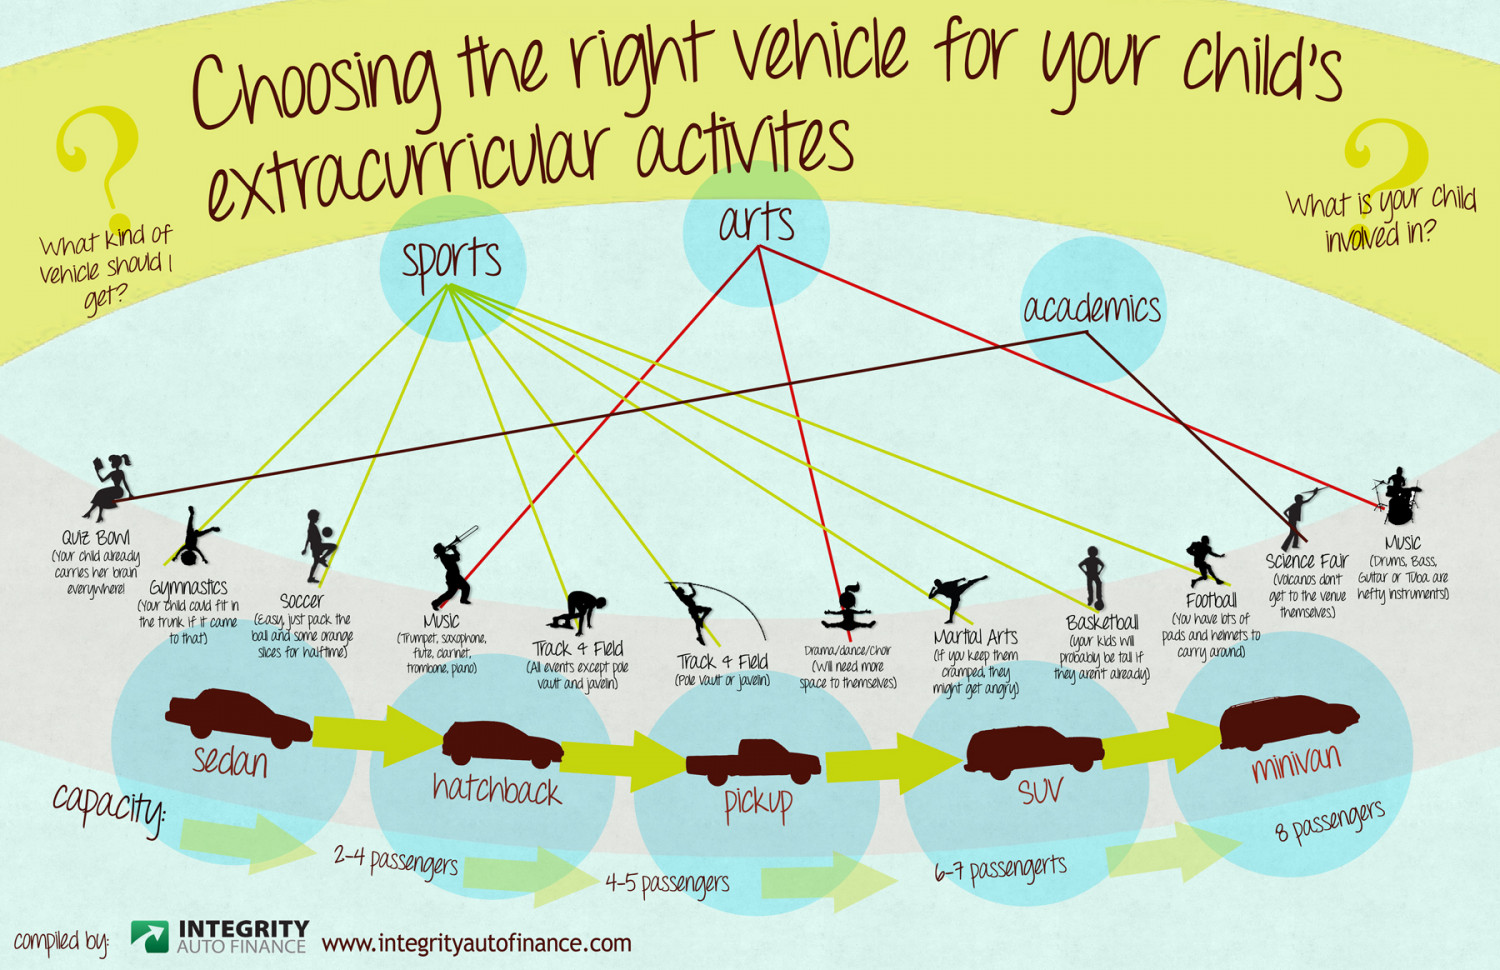 Choose the right vehicle for your children's activities Infographic